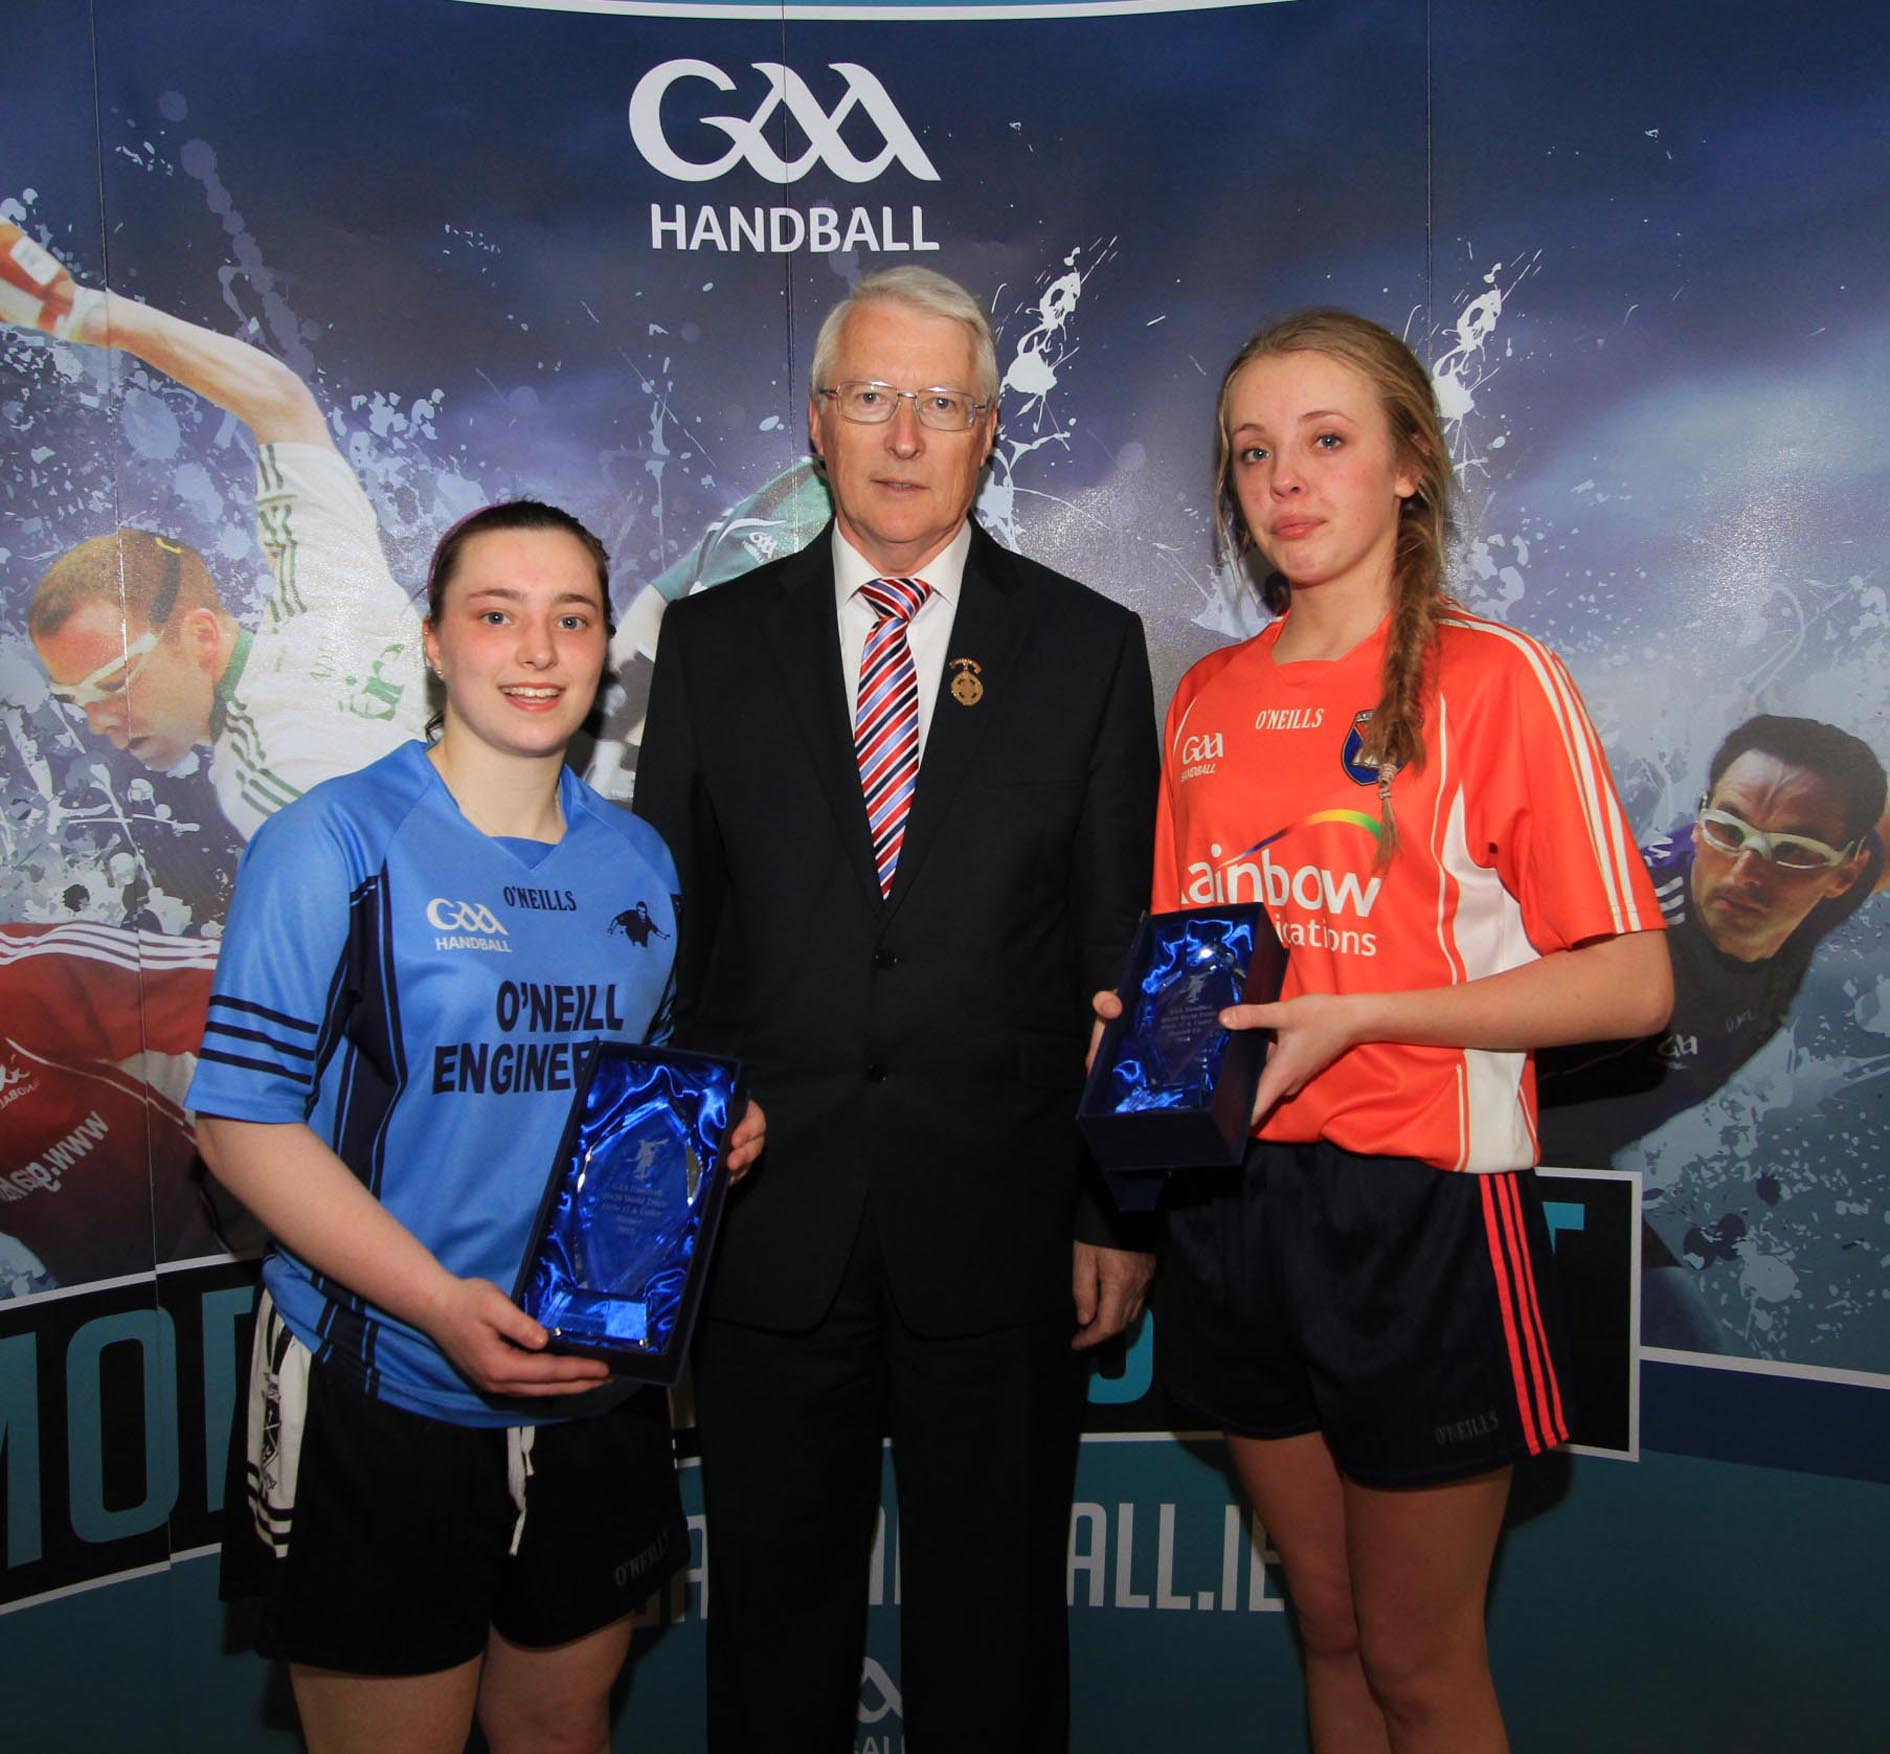 GAA Handball News